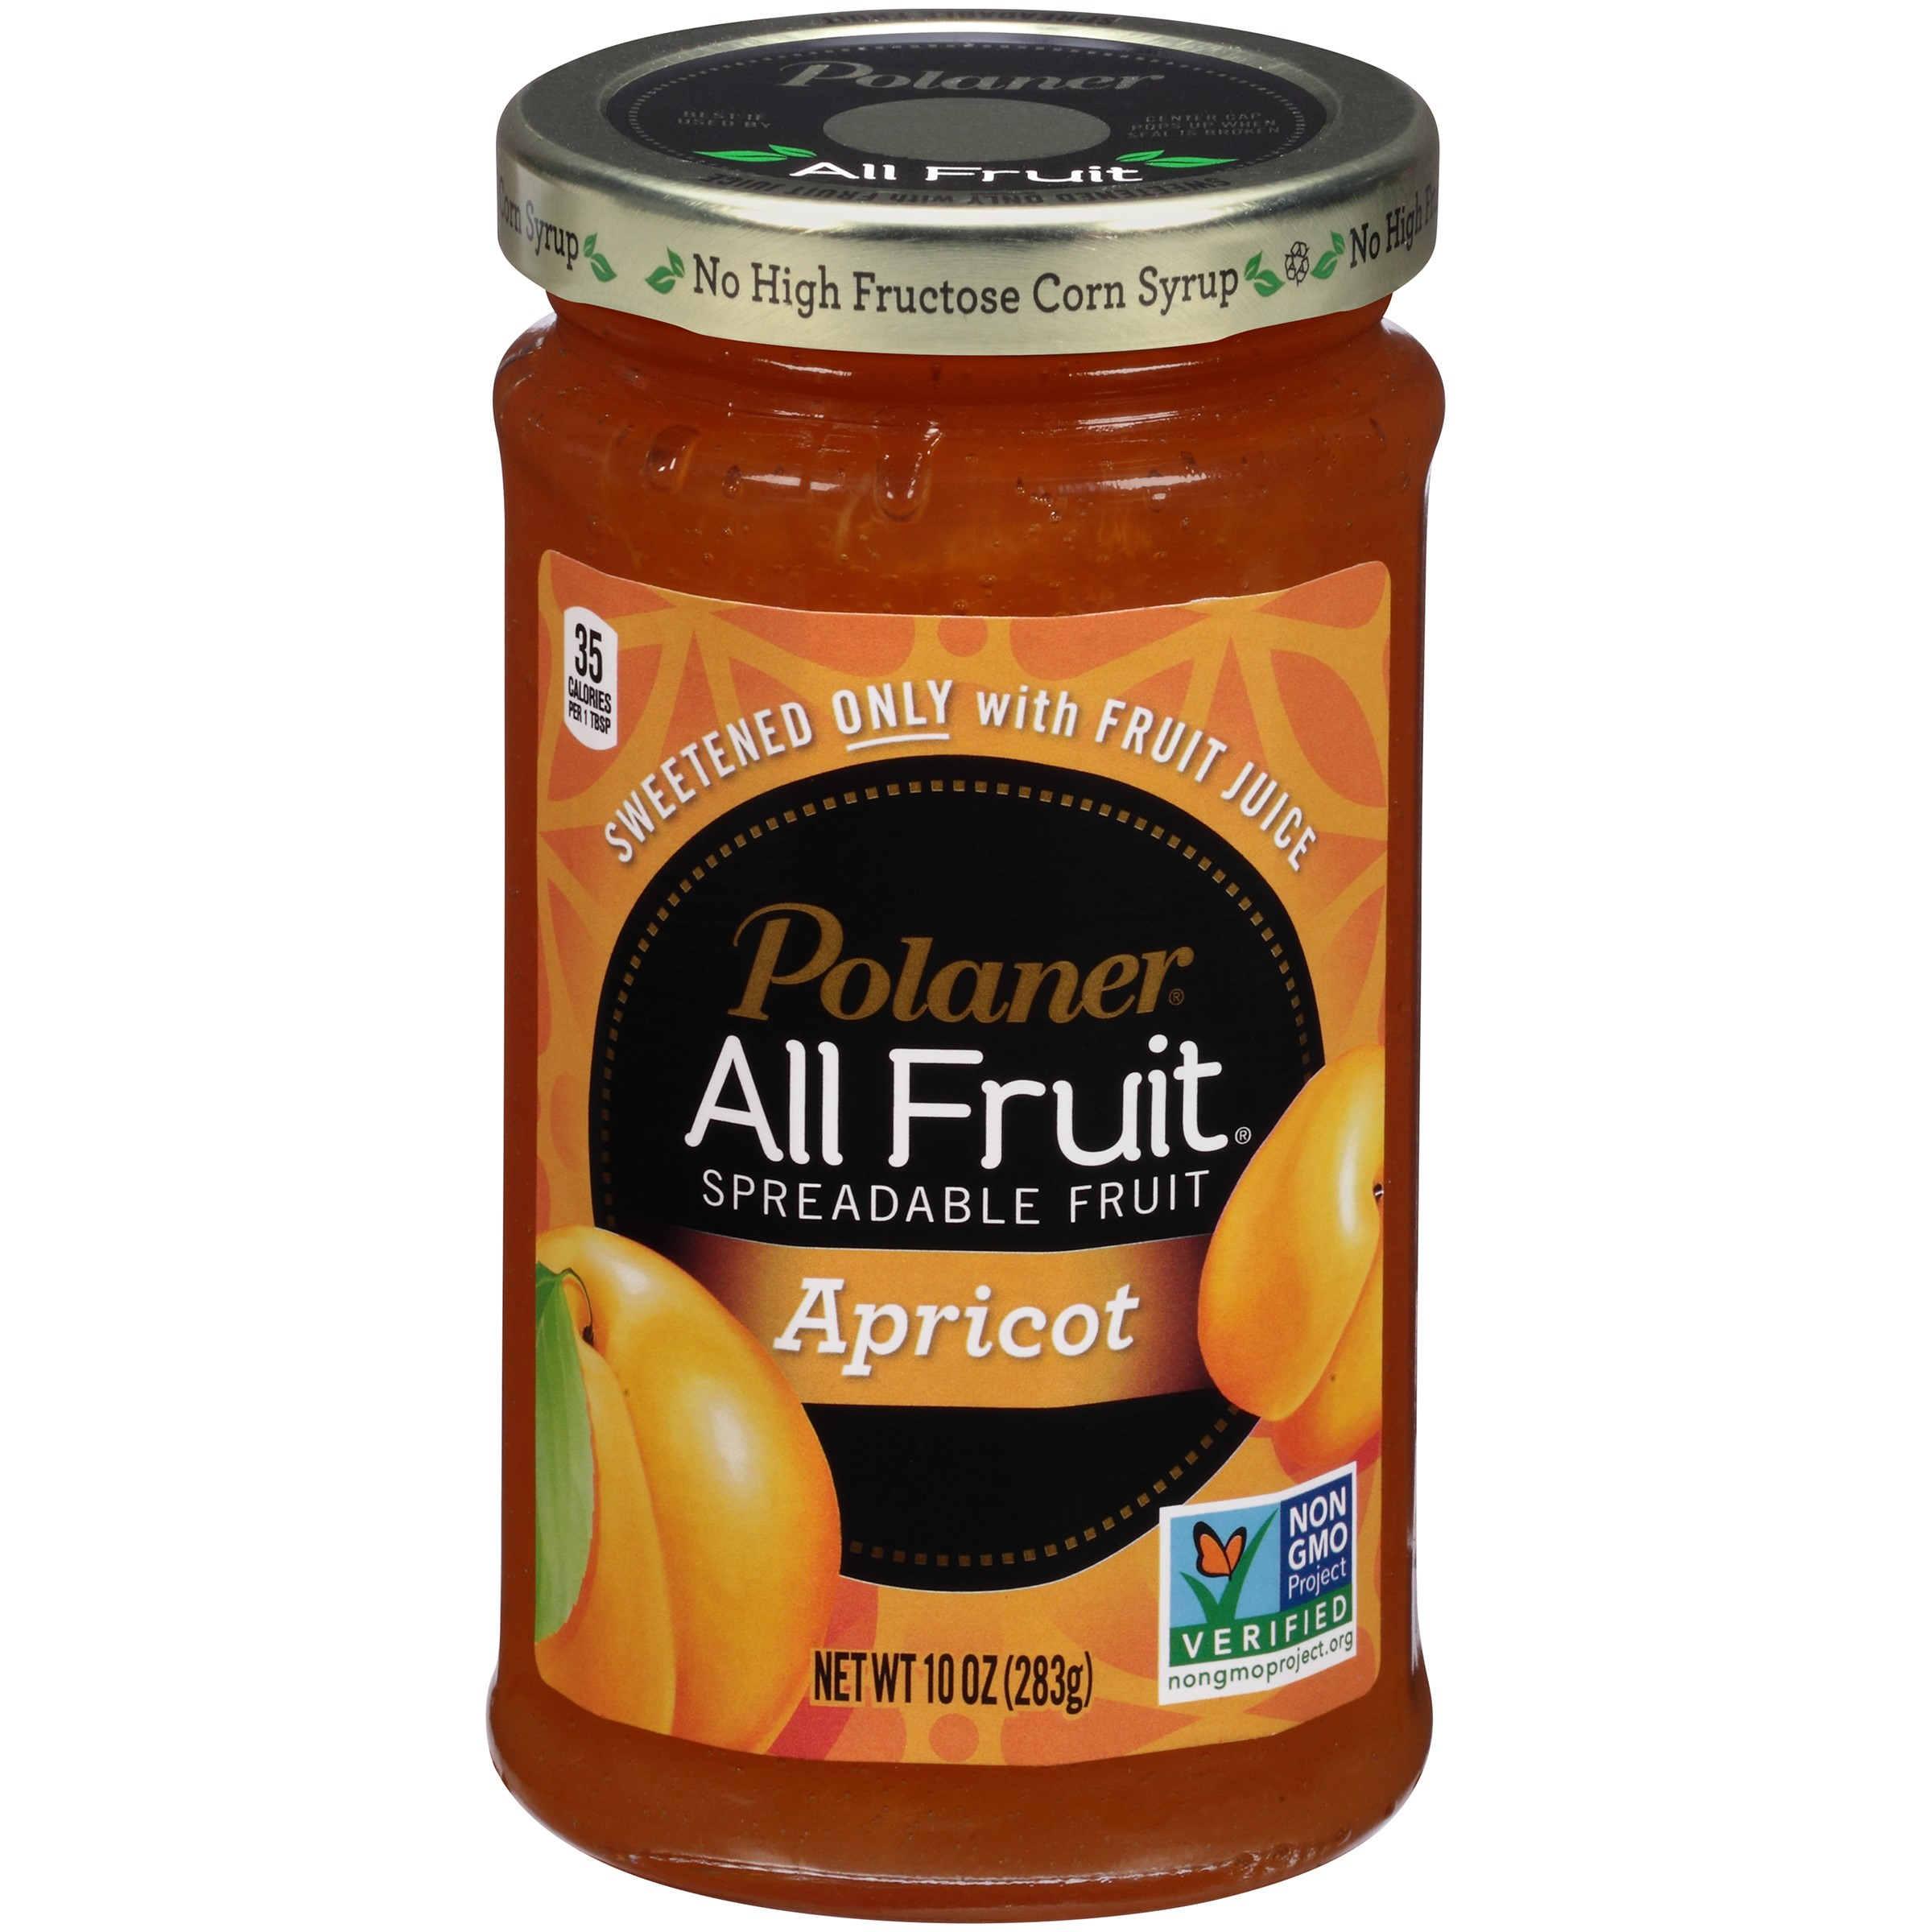 Polaner® All Fruit® Apricot Spreadable Fruit 10 oz. Jar